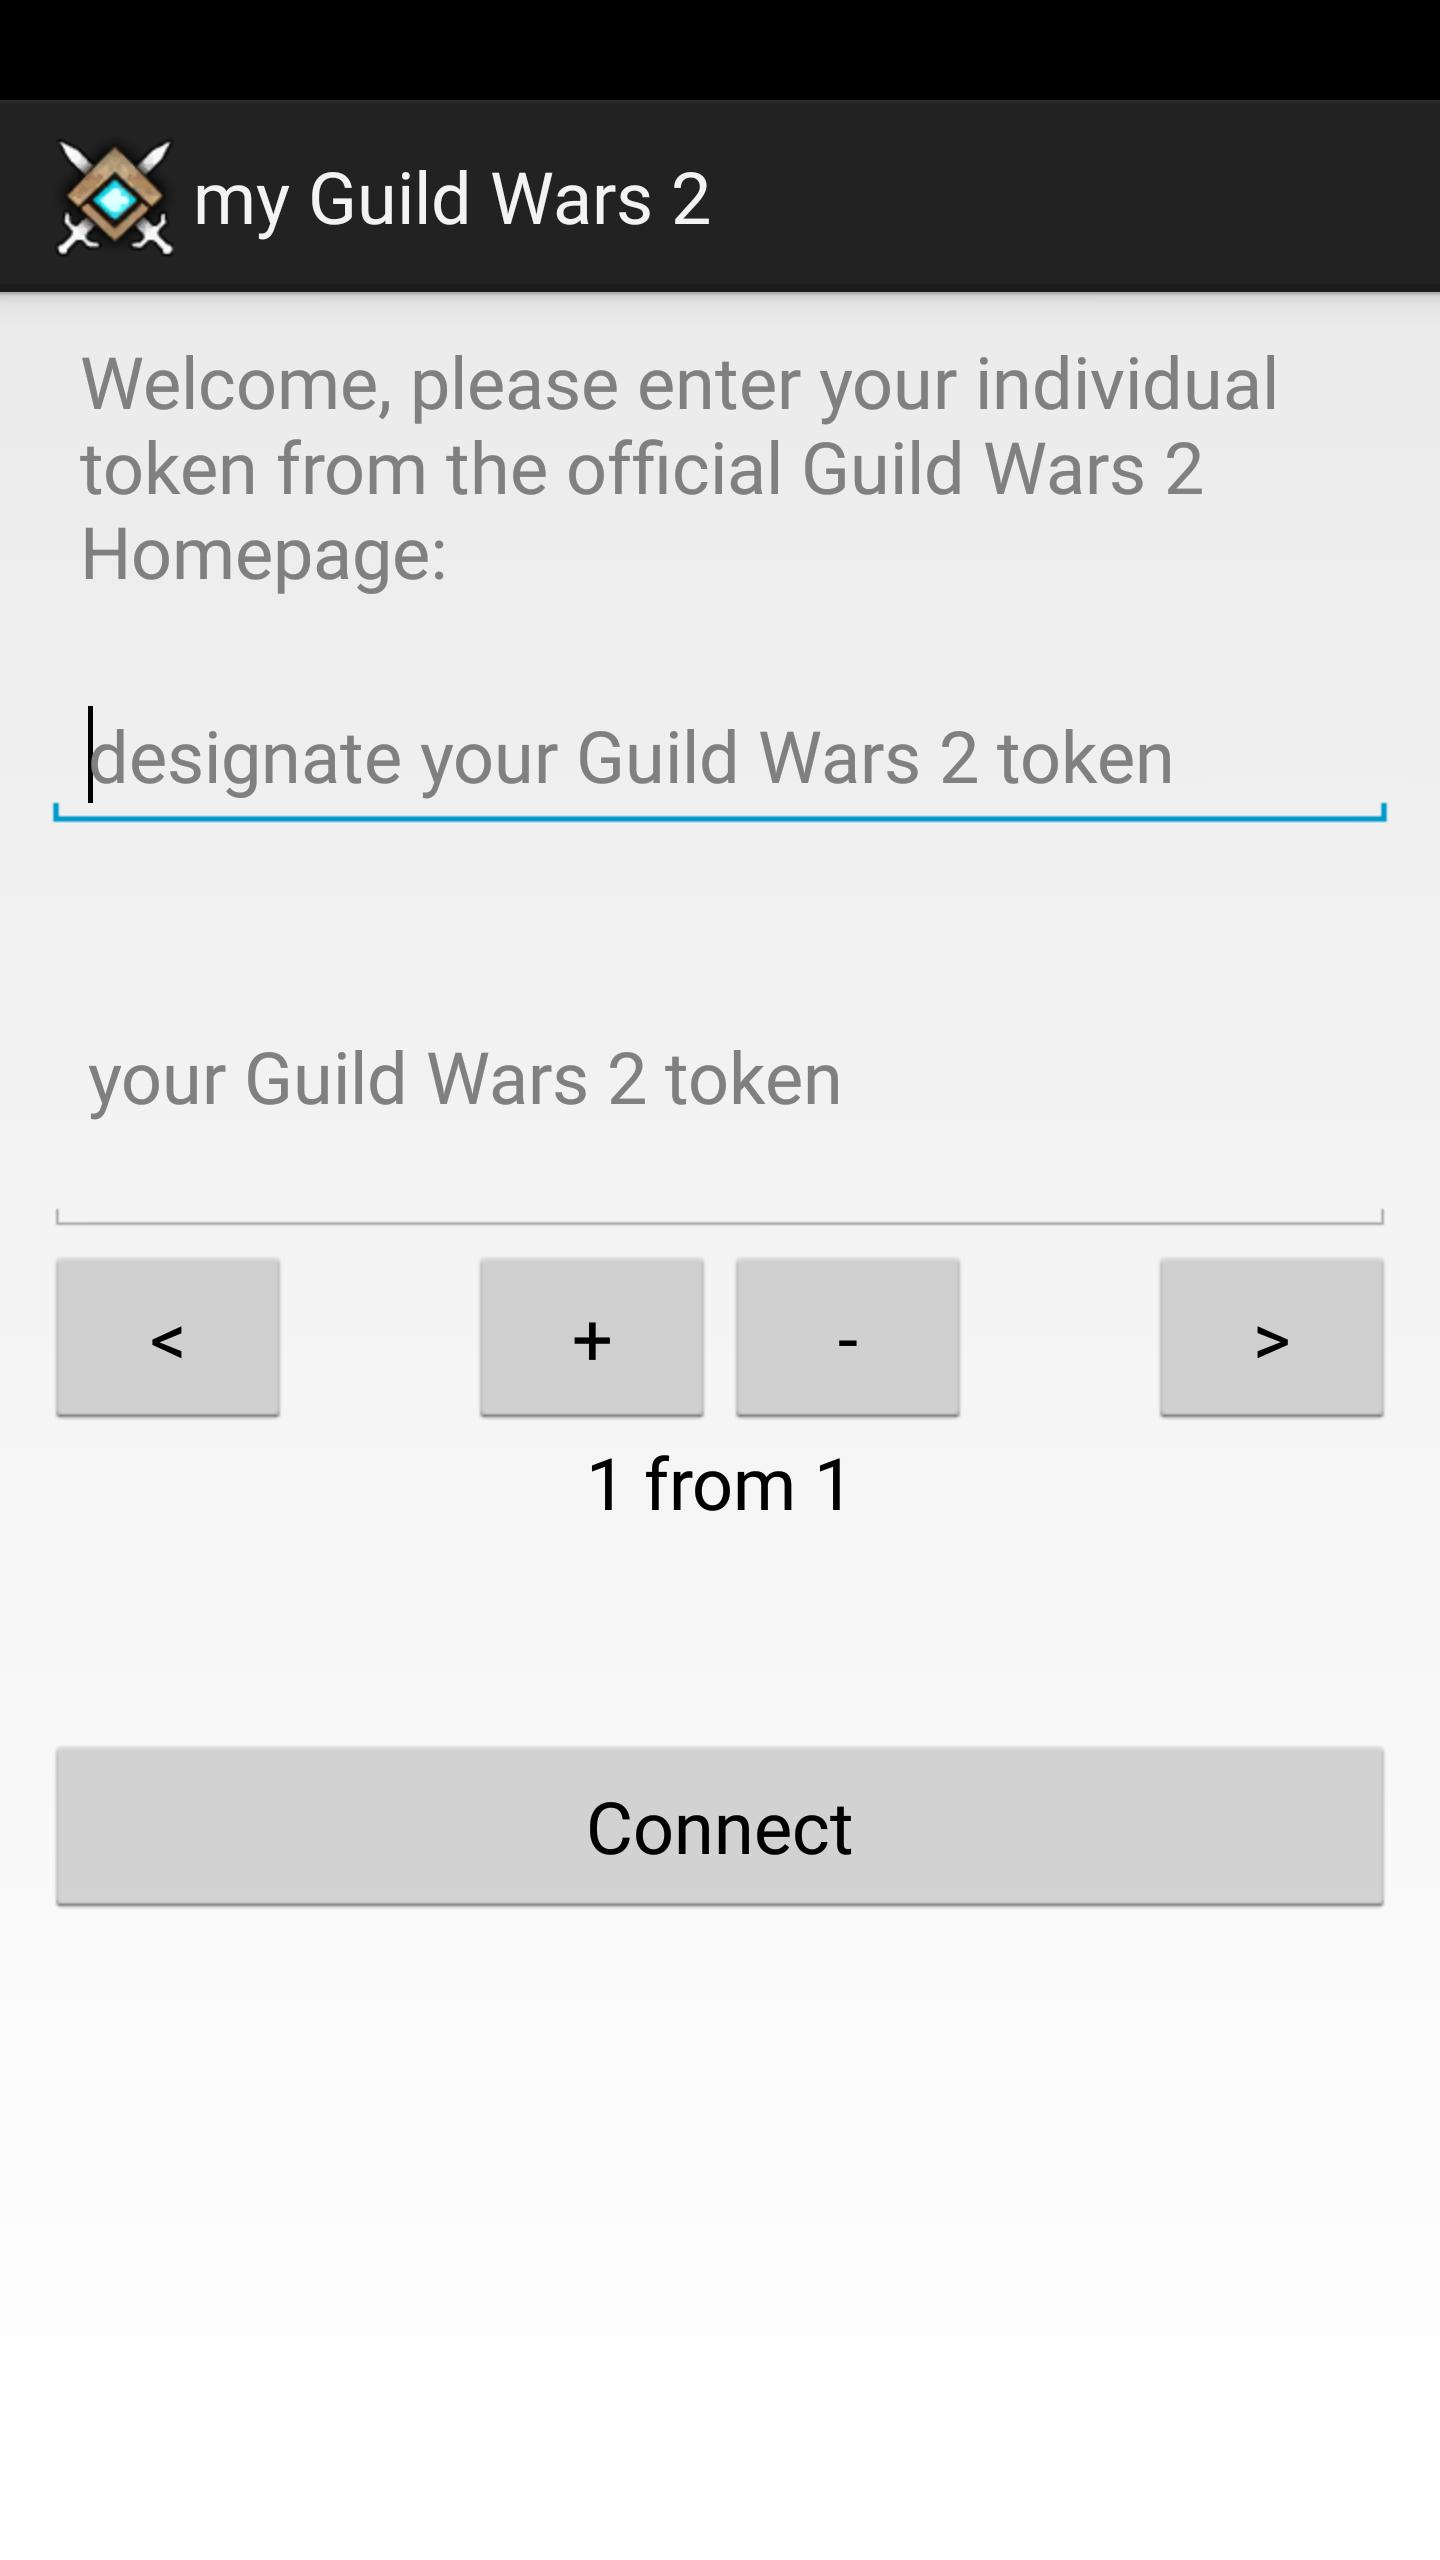 my Guild Wars 2 for Android - APK Download